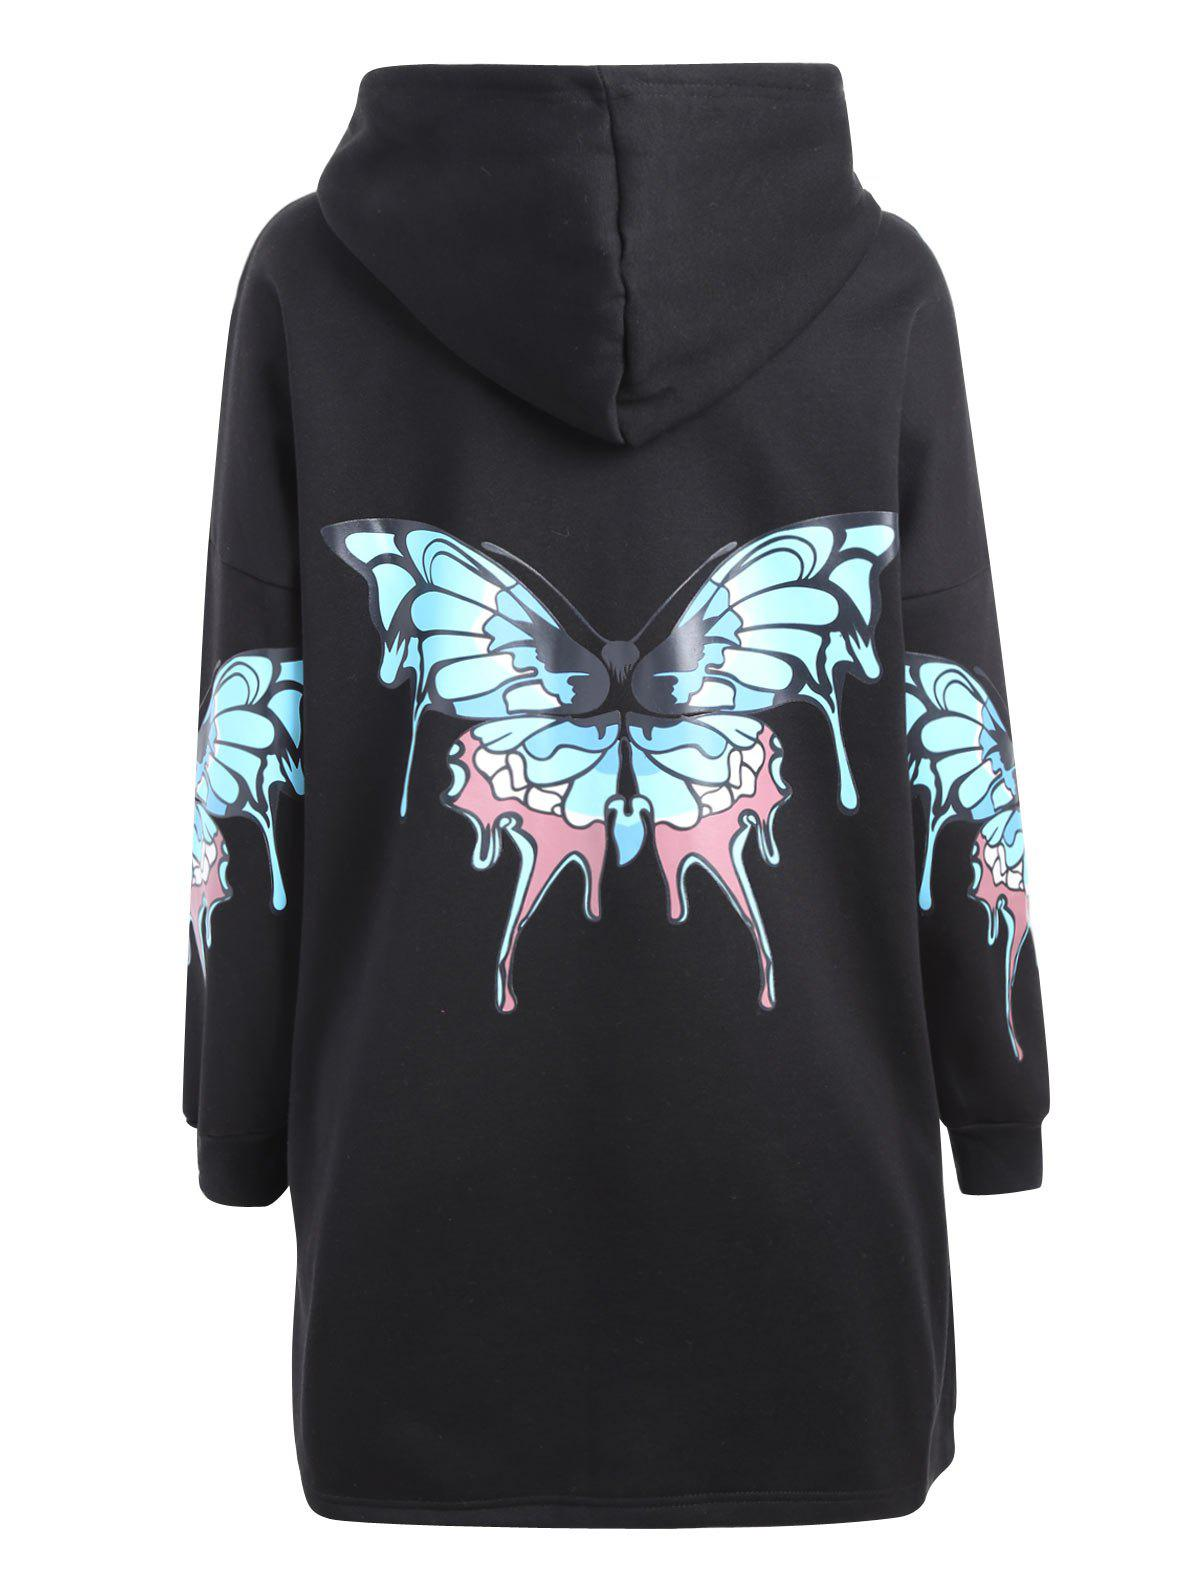 Plus Size Butterfly Printed Zip Up Hooded CoatWOMEN<br><br>Size: 5XL; Color: BLACK; Clothes Type: Others; Material: Cotton Blends,Polyester; Type: Slim; Shirt Length: Long; Sleeve Length: Full; Collar: Hooded; Closure Type: Zipper; Pattern Type: Insect; Embellishment: Front Pocket; Style: Casual; Season: Fall,Winter; Weight: 0.6900kg; Package Contents: 1 x Coat;